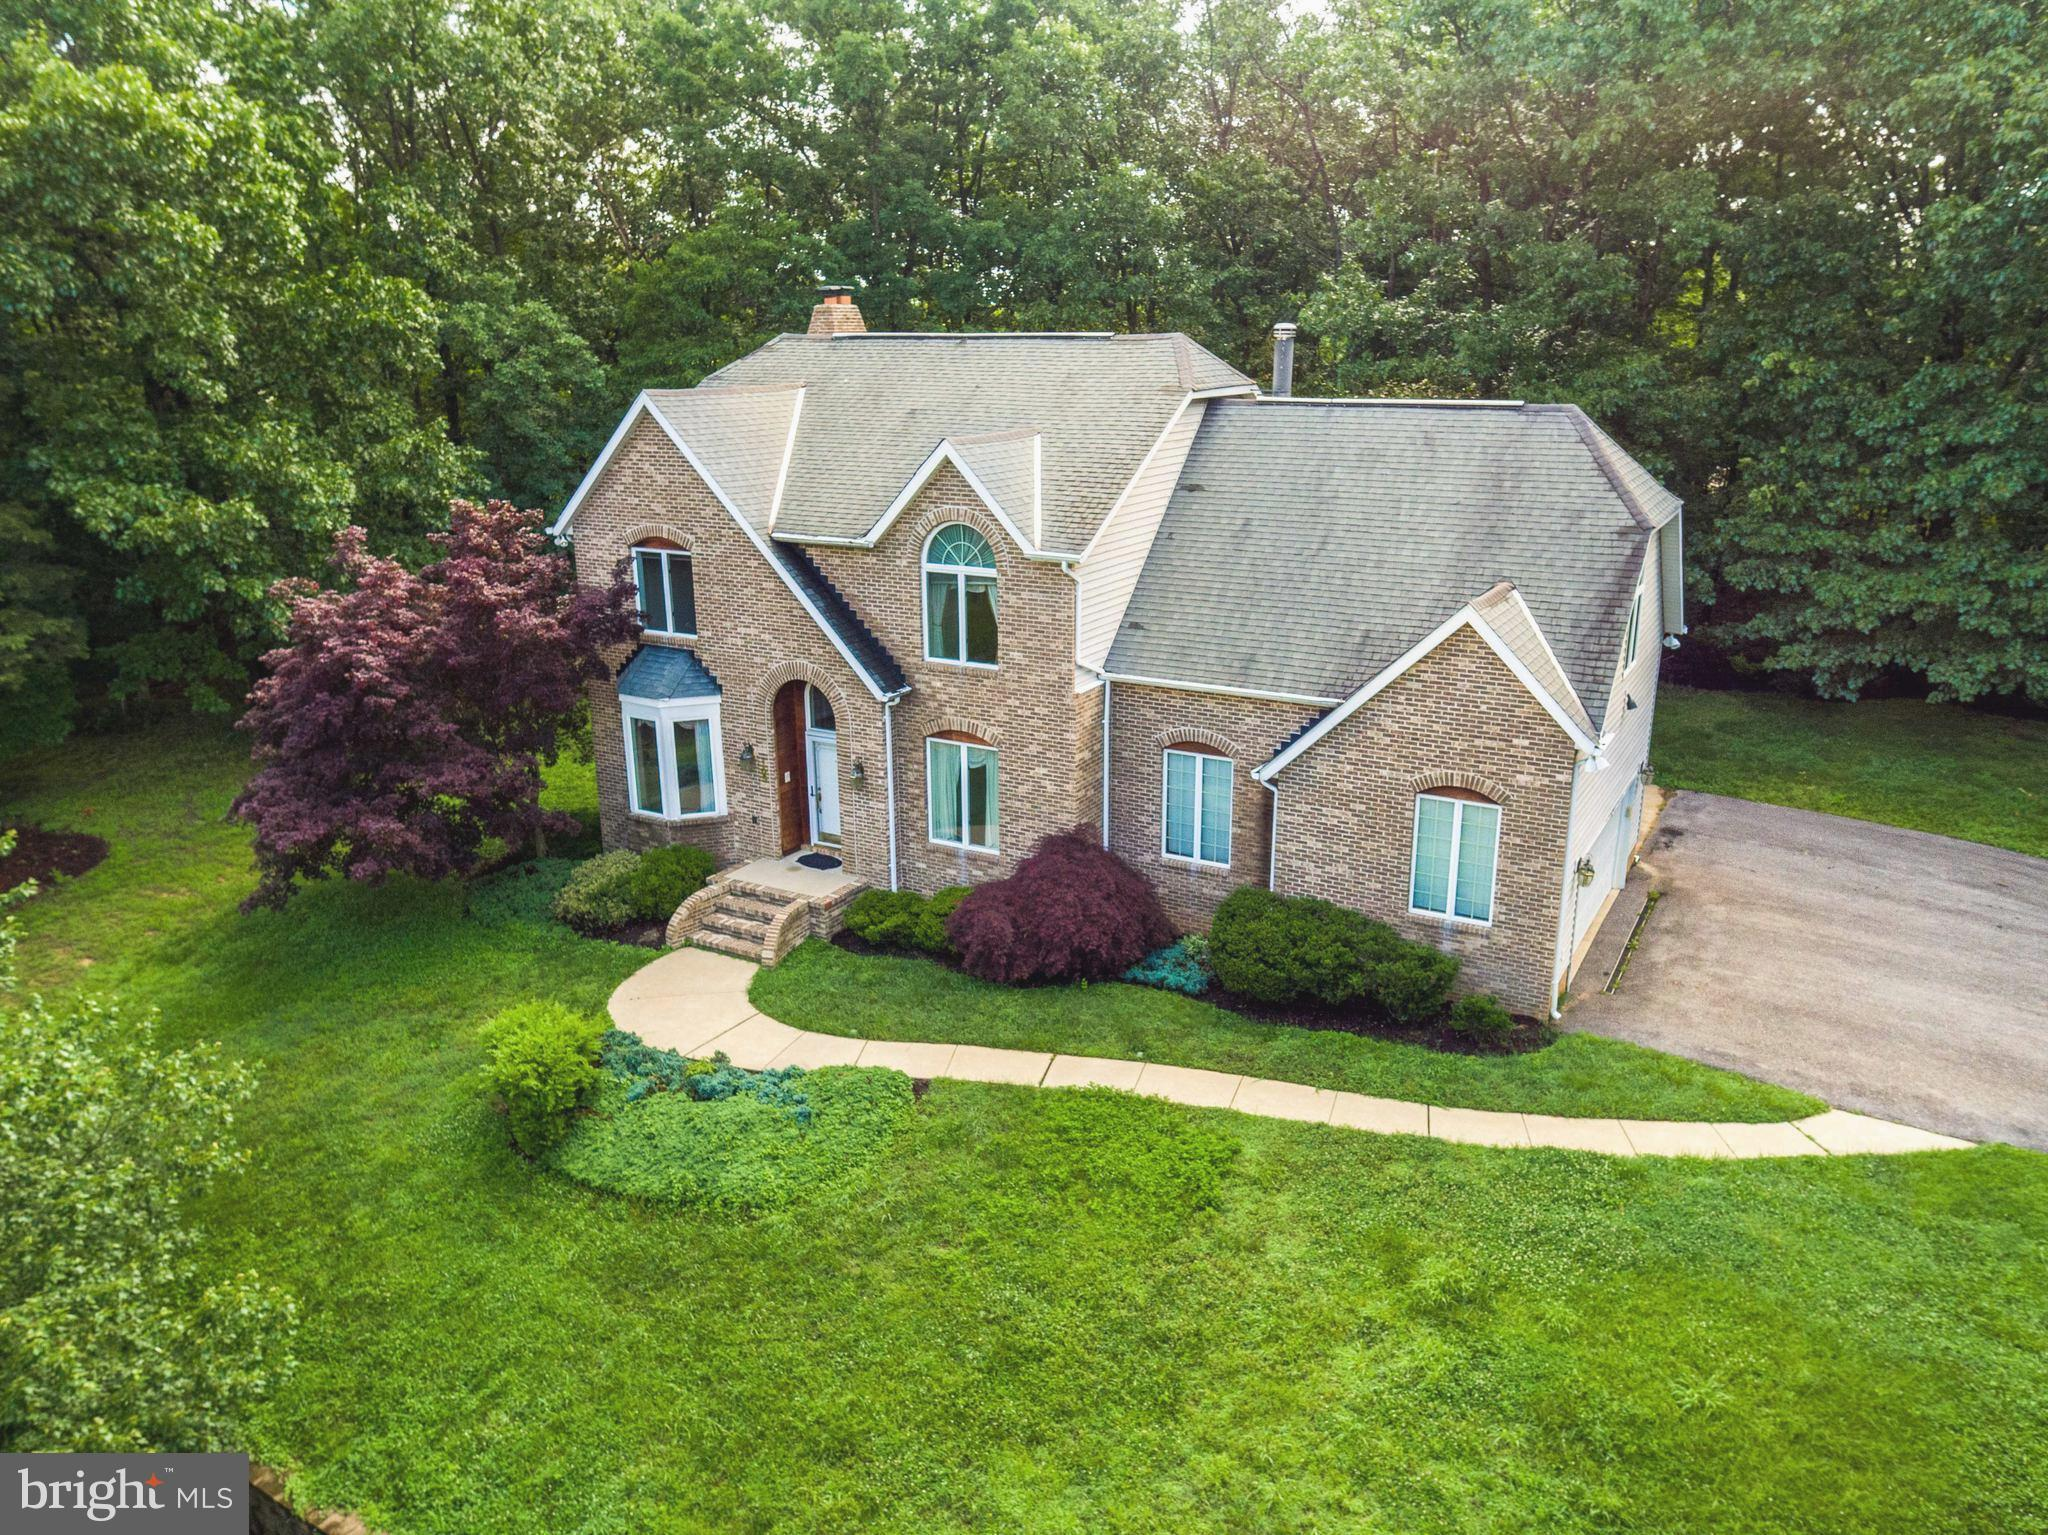 105 LAHINCH DRIVE, MILLERSVILLE, MD 21108